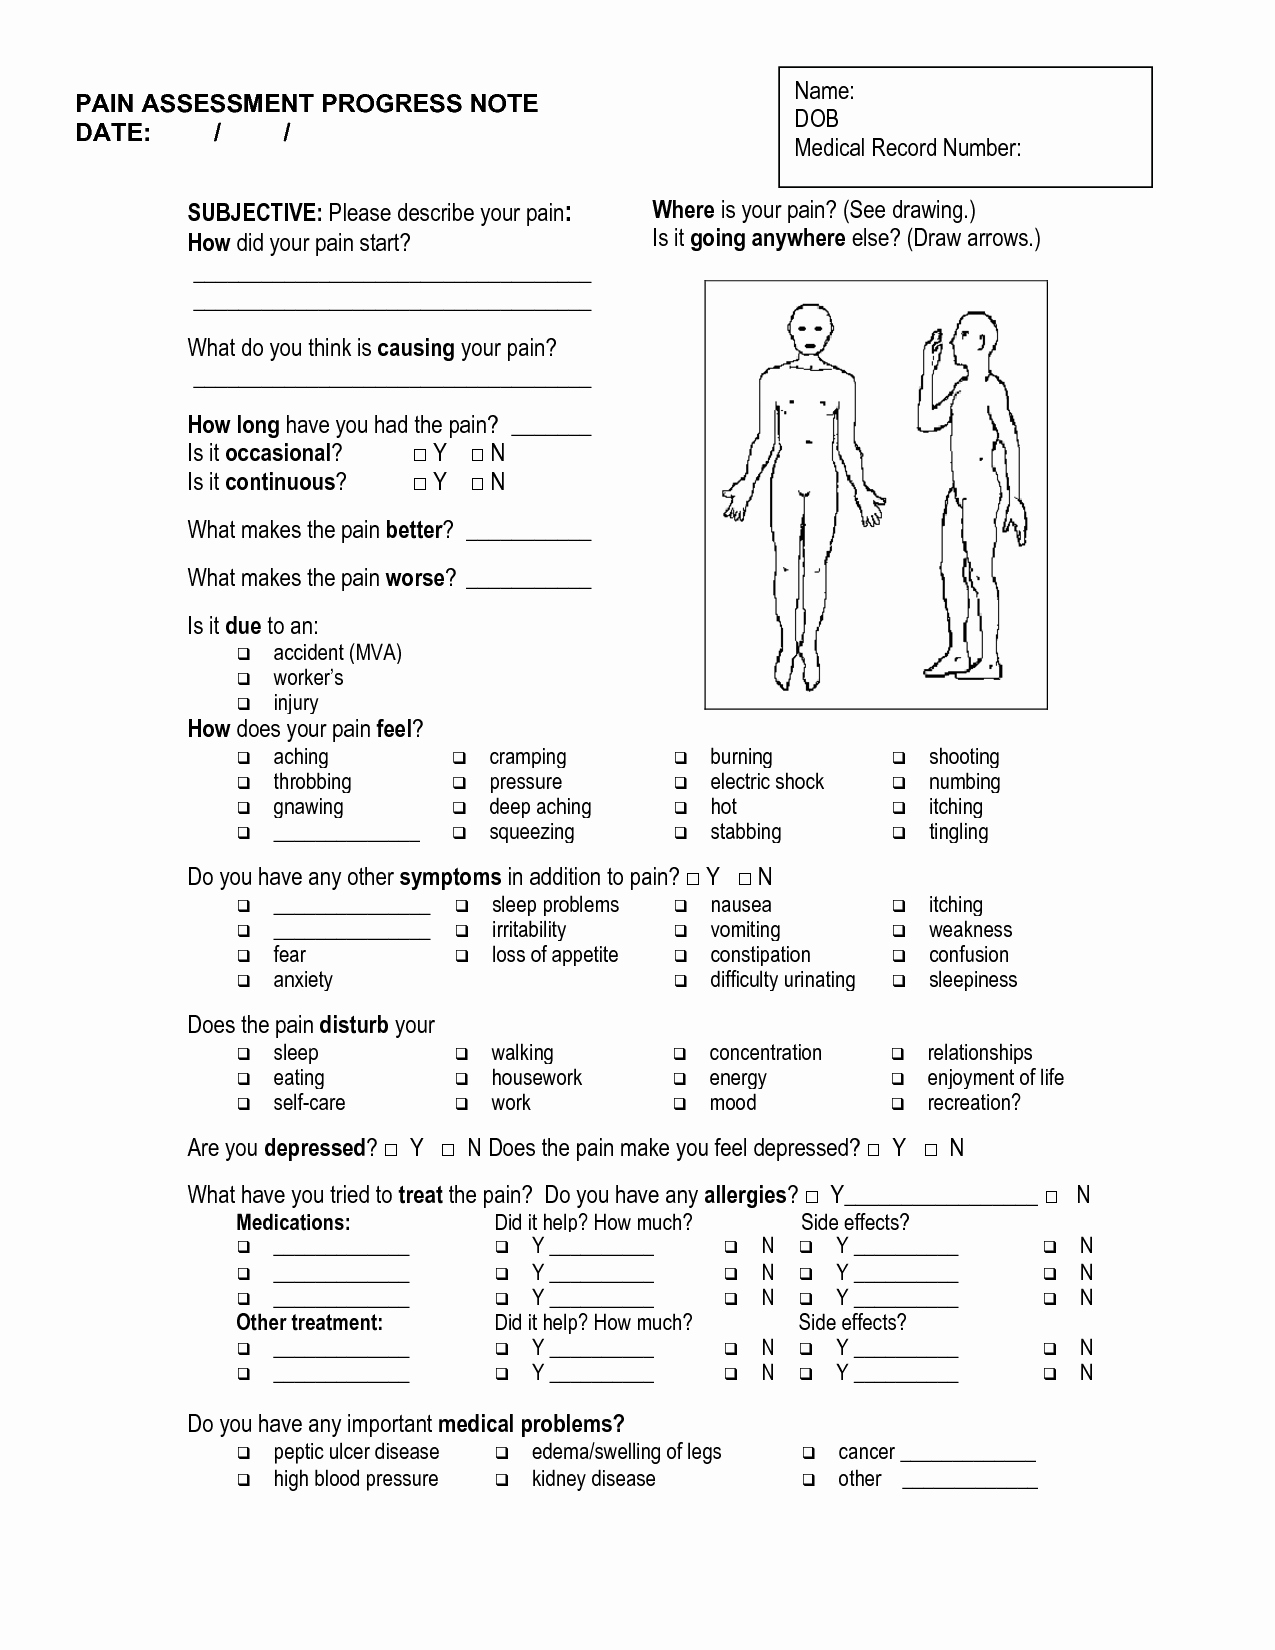 Soap therapy Note Template Unique 10 Best Of Free Massage therapy soap Note forms